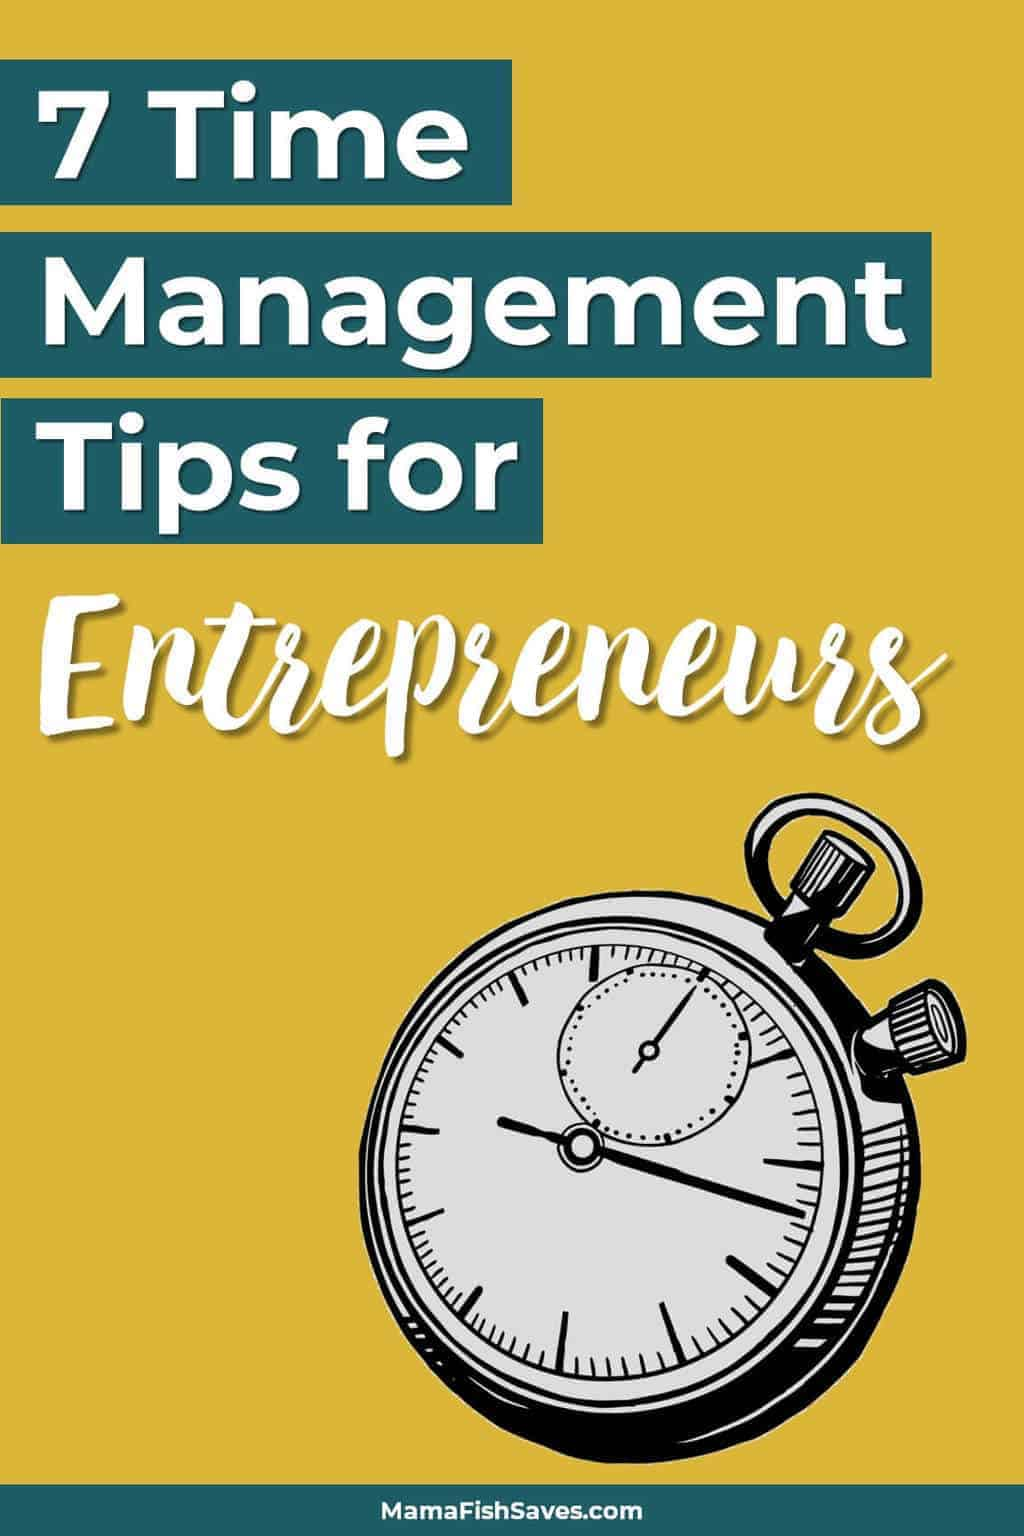 So needed this! Need to stop running myself ragged and get control of my business schedule. These time management tips are awesome! #onlineentrepreneur #entrepreneur #timemanagement #sidehustle